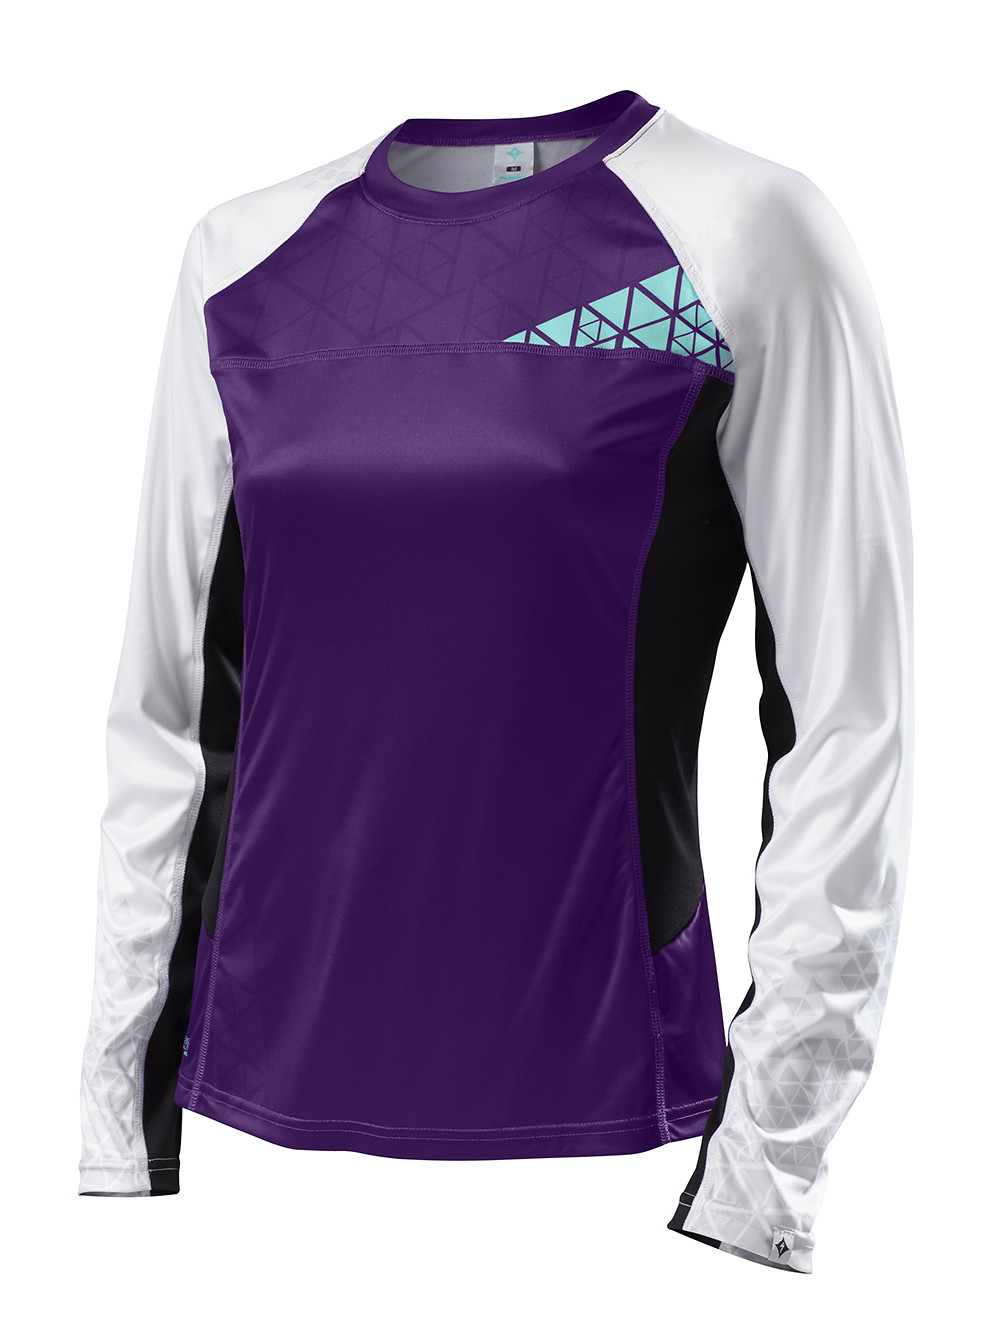 Specialized Women's Andorra Comp Long Sleeve Jersey - purple:light teal